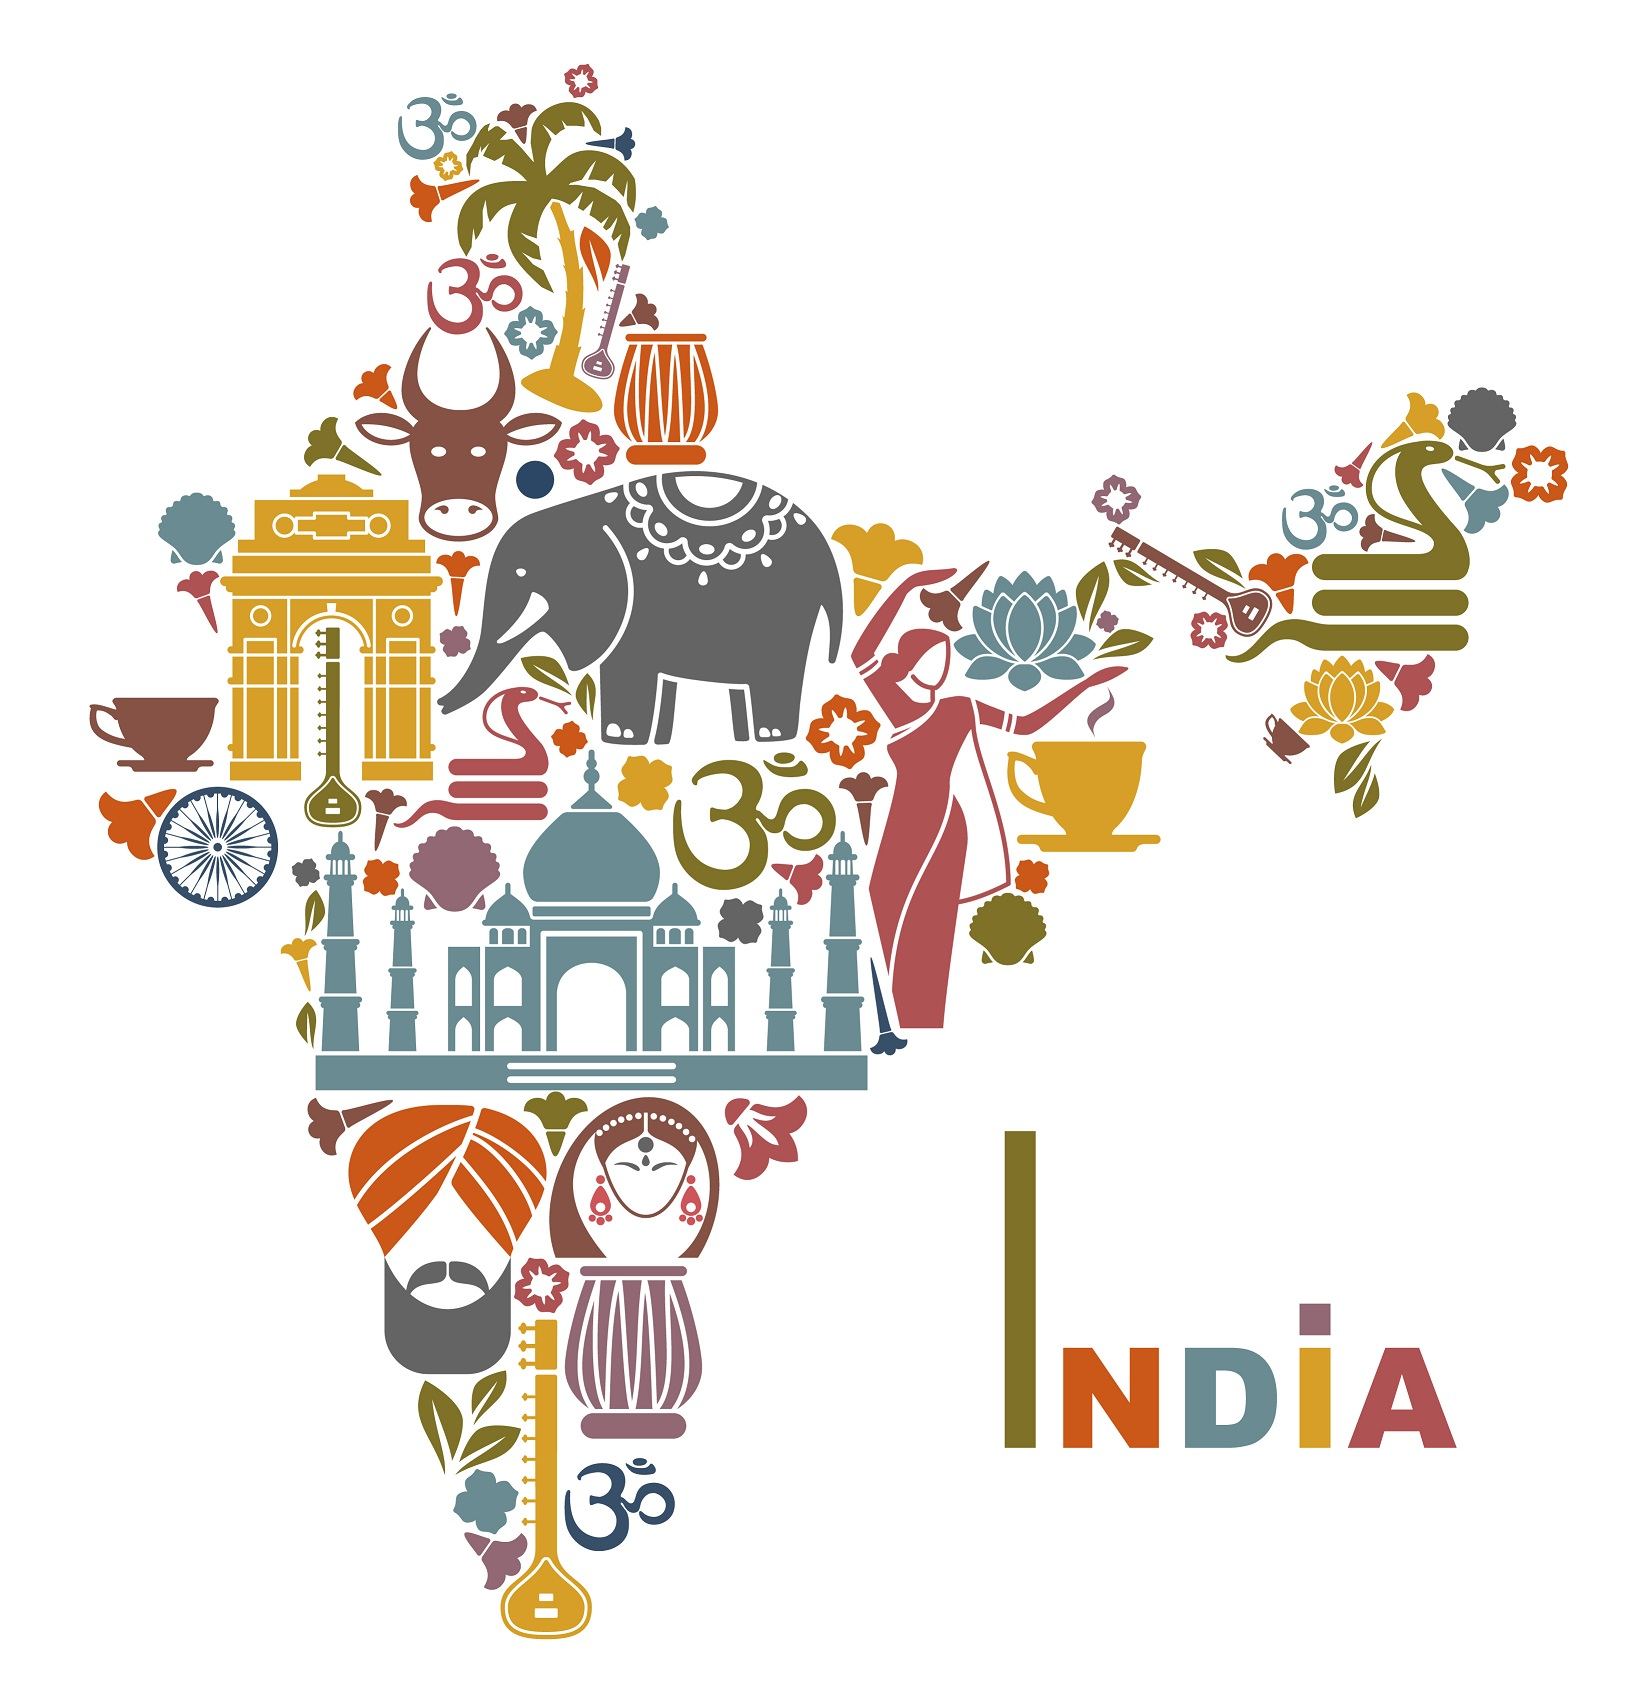 higher education in india Foreword higher education in india: vision 2030 dear readers, by 2030, india will be amongst the youngest nations in the world with nearly 140 million people in the college-going.